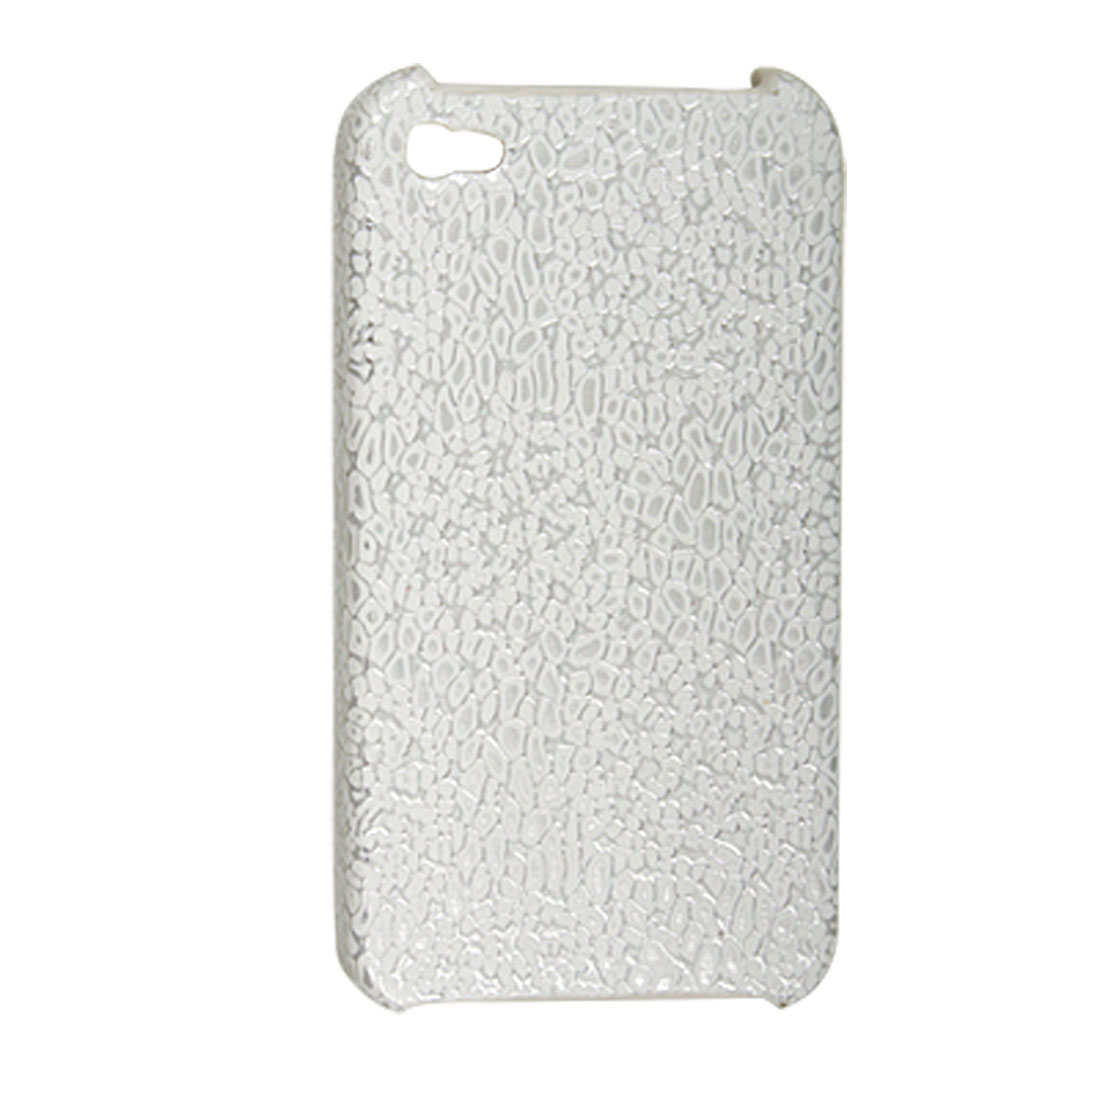 White Silver Tone Textured Back Case for iPhone 4 4G